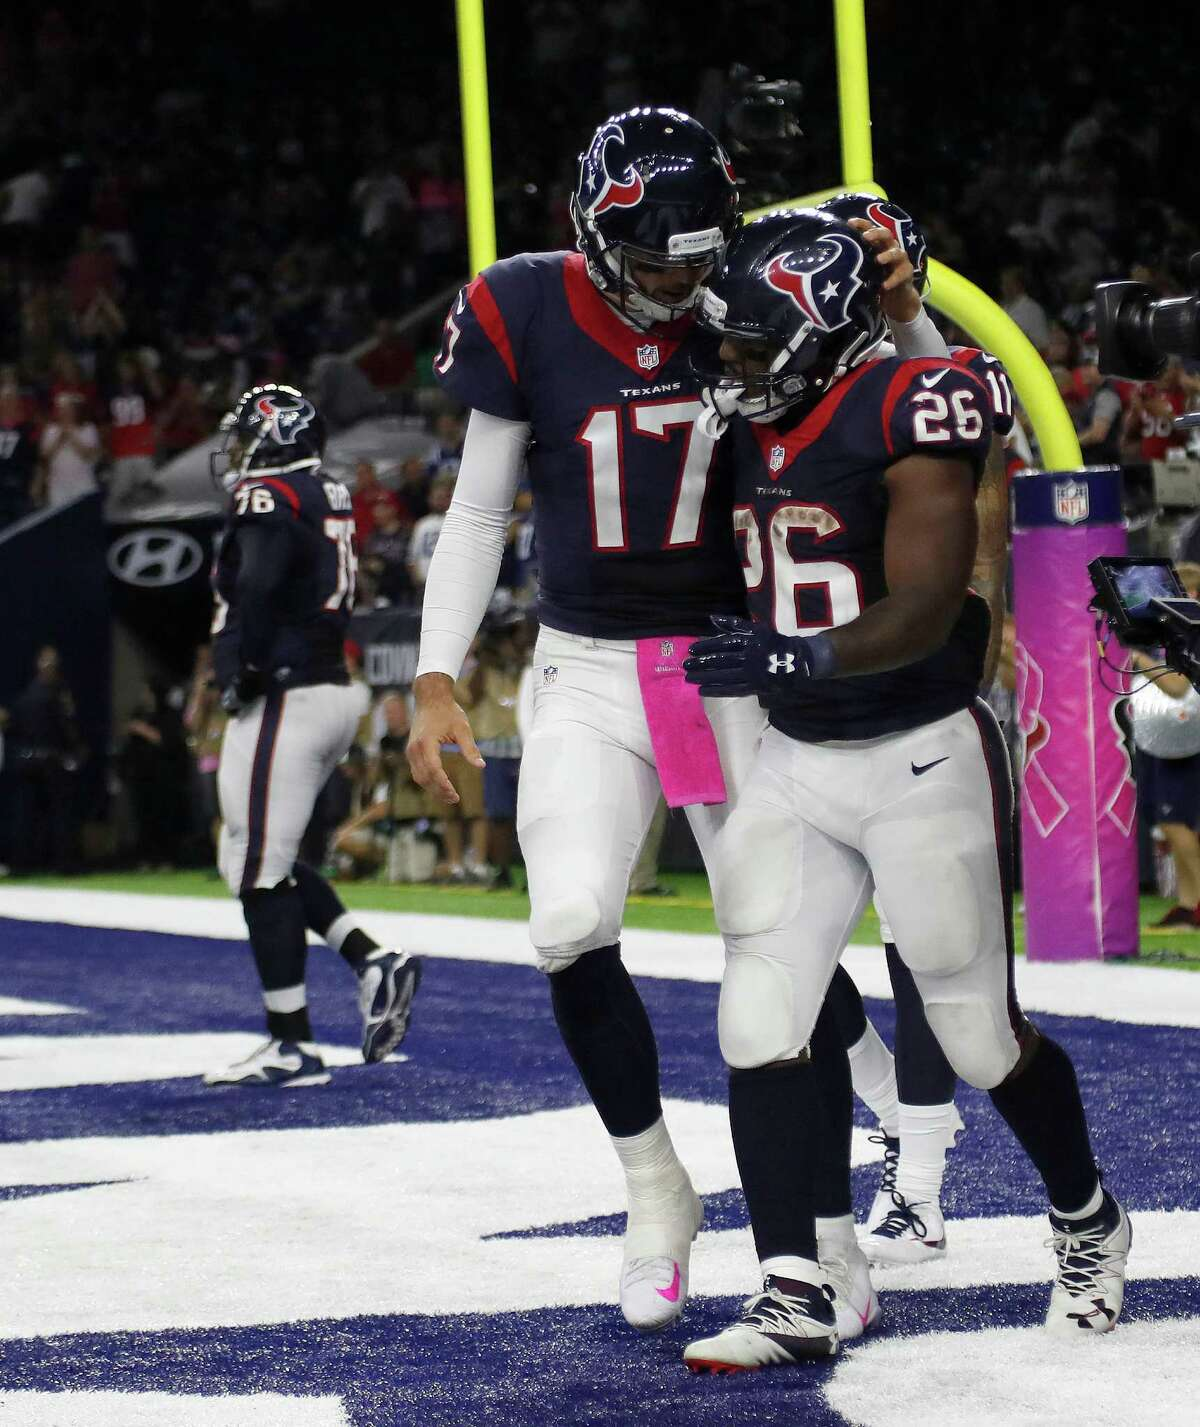 Brock Osweiler (17) congratulates Lamar Miller on the catch-and-run scoring play that launched the Texans' comeback against the Colts in October.